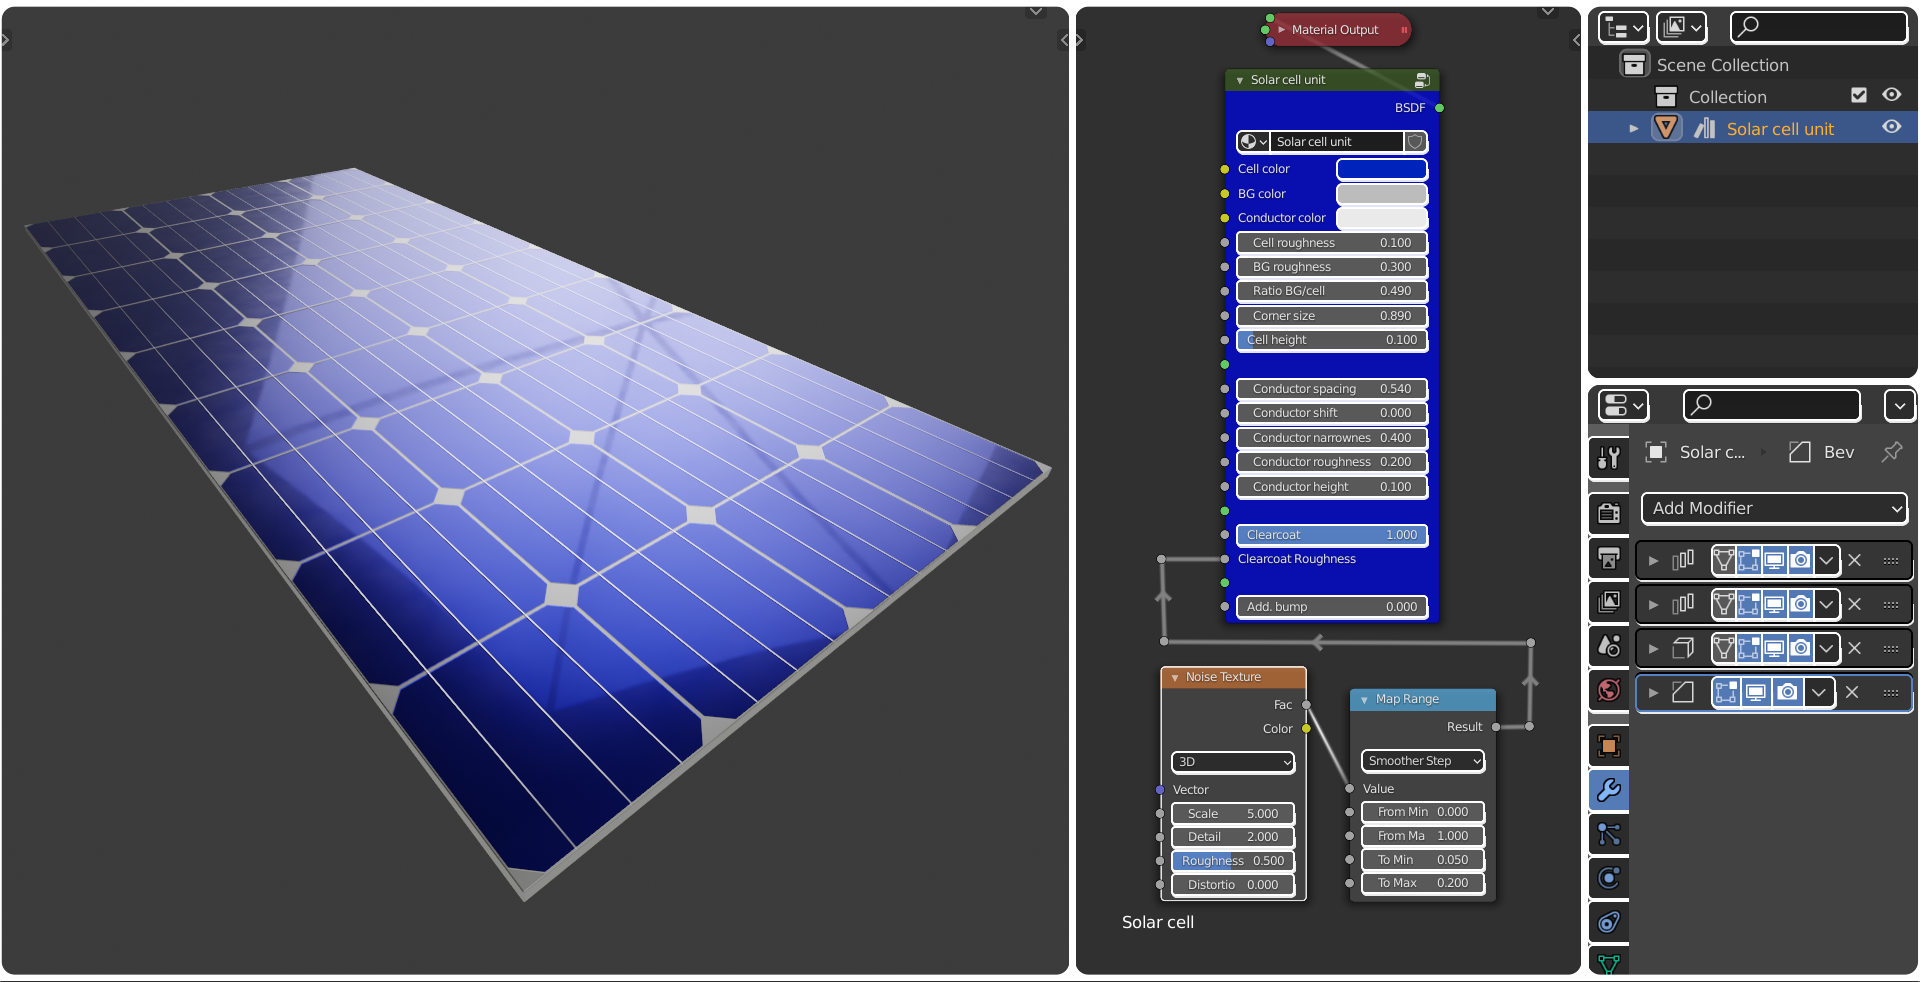 Custom Solar Cell Unit preview image 1